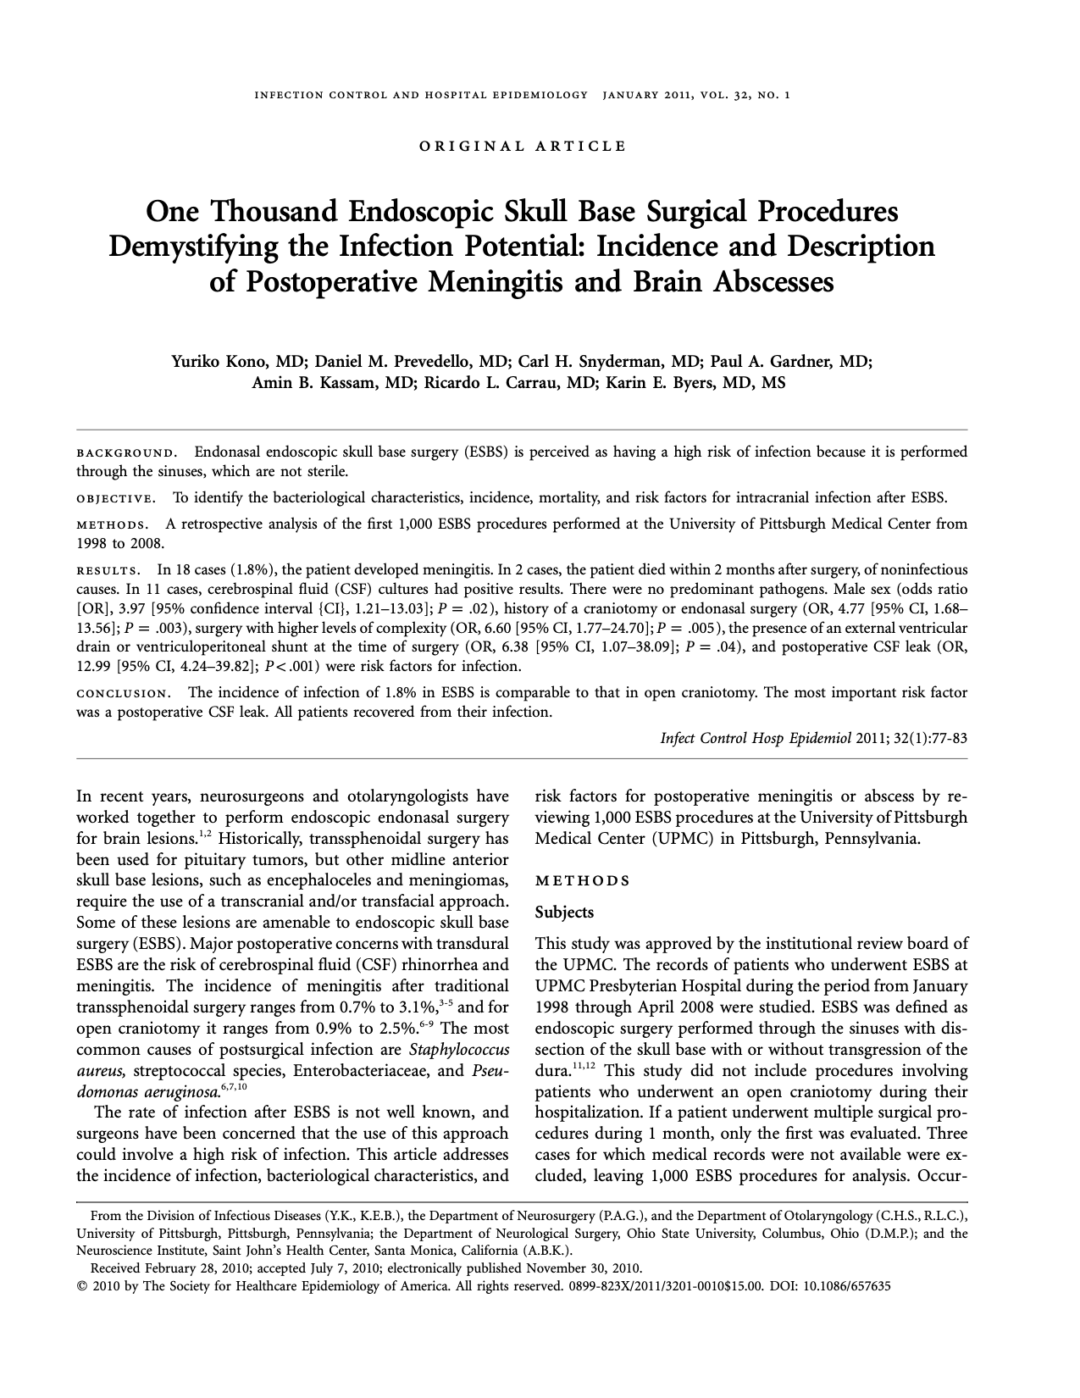 One Thousand Endoscopic Skull Base Surgical Procedures Demystifying the Infection Potential: Incidence and Description of Postoperative Meningitis and Brain Abscesses